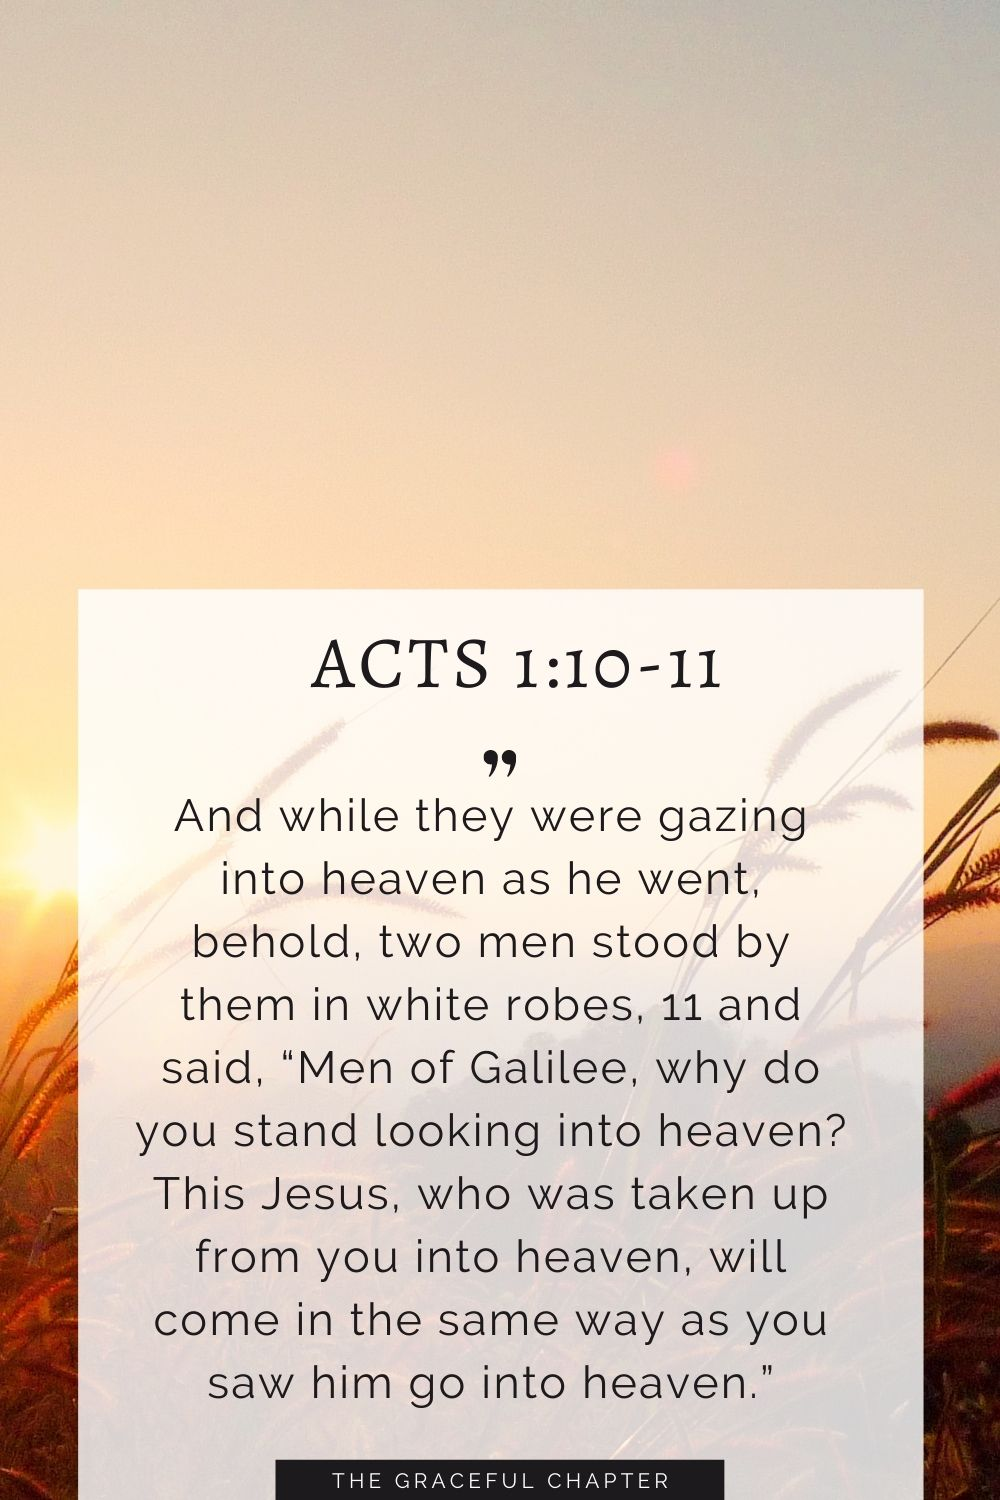 """And while they were gazing into heaven as he went, behold, two men stood by them in white robes, 11and said, """"Men of Galilee, why do you stand looking into heaven? This Jesus, who was taken up from you into heaven, will come in the same way as you saw him go into heaven."""" Acts 1:10-11"""